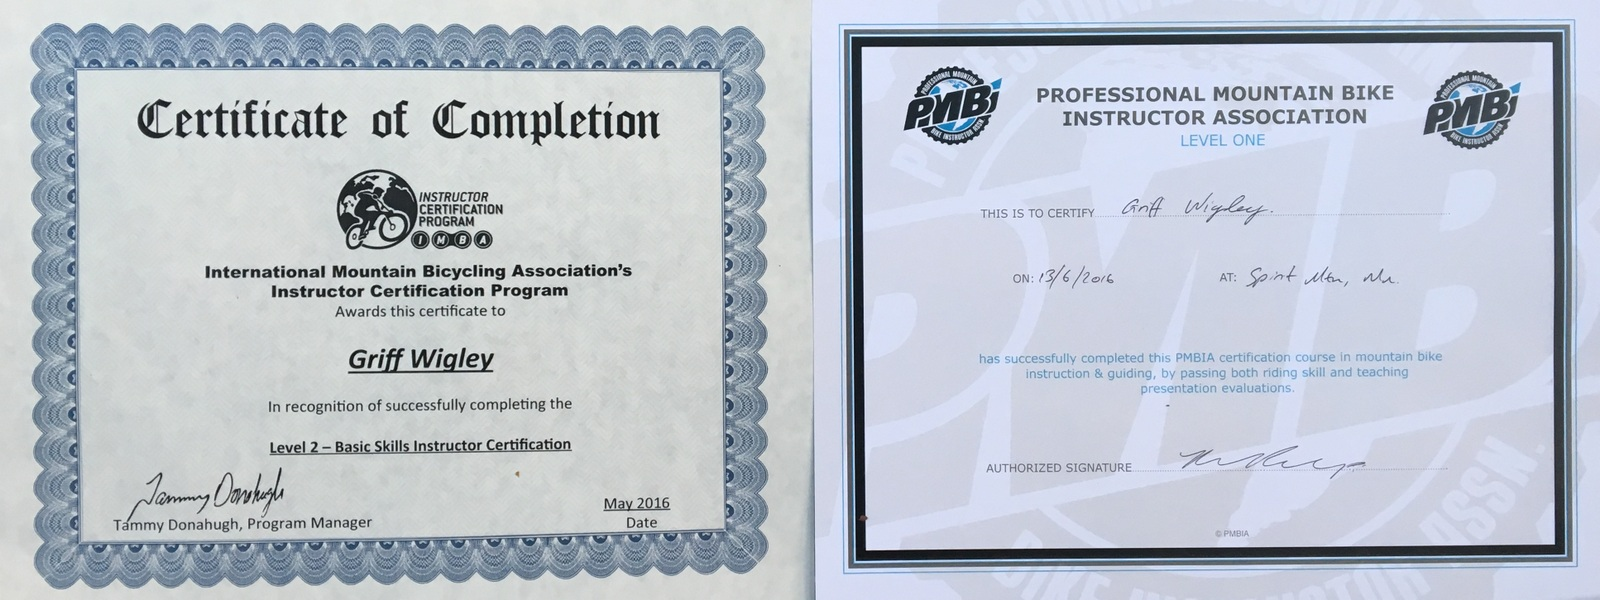 Mountain biking instructor certifications imba icp level 2 vs imba icp level 2 and pmbi level 1 certificates griff wigley 2016 1betcityfo Gallery